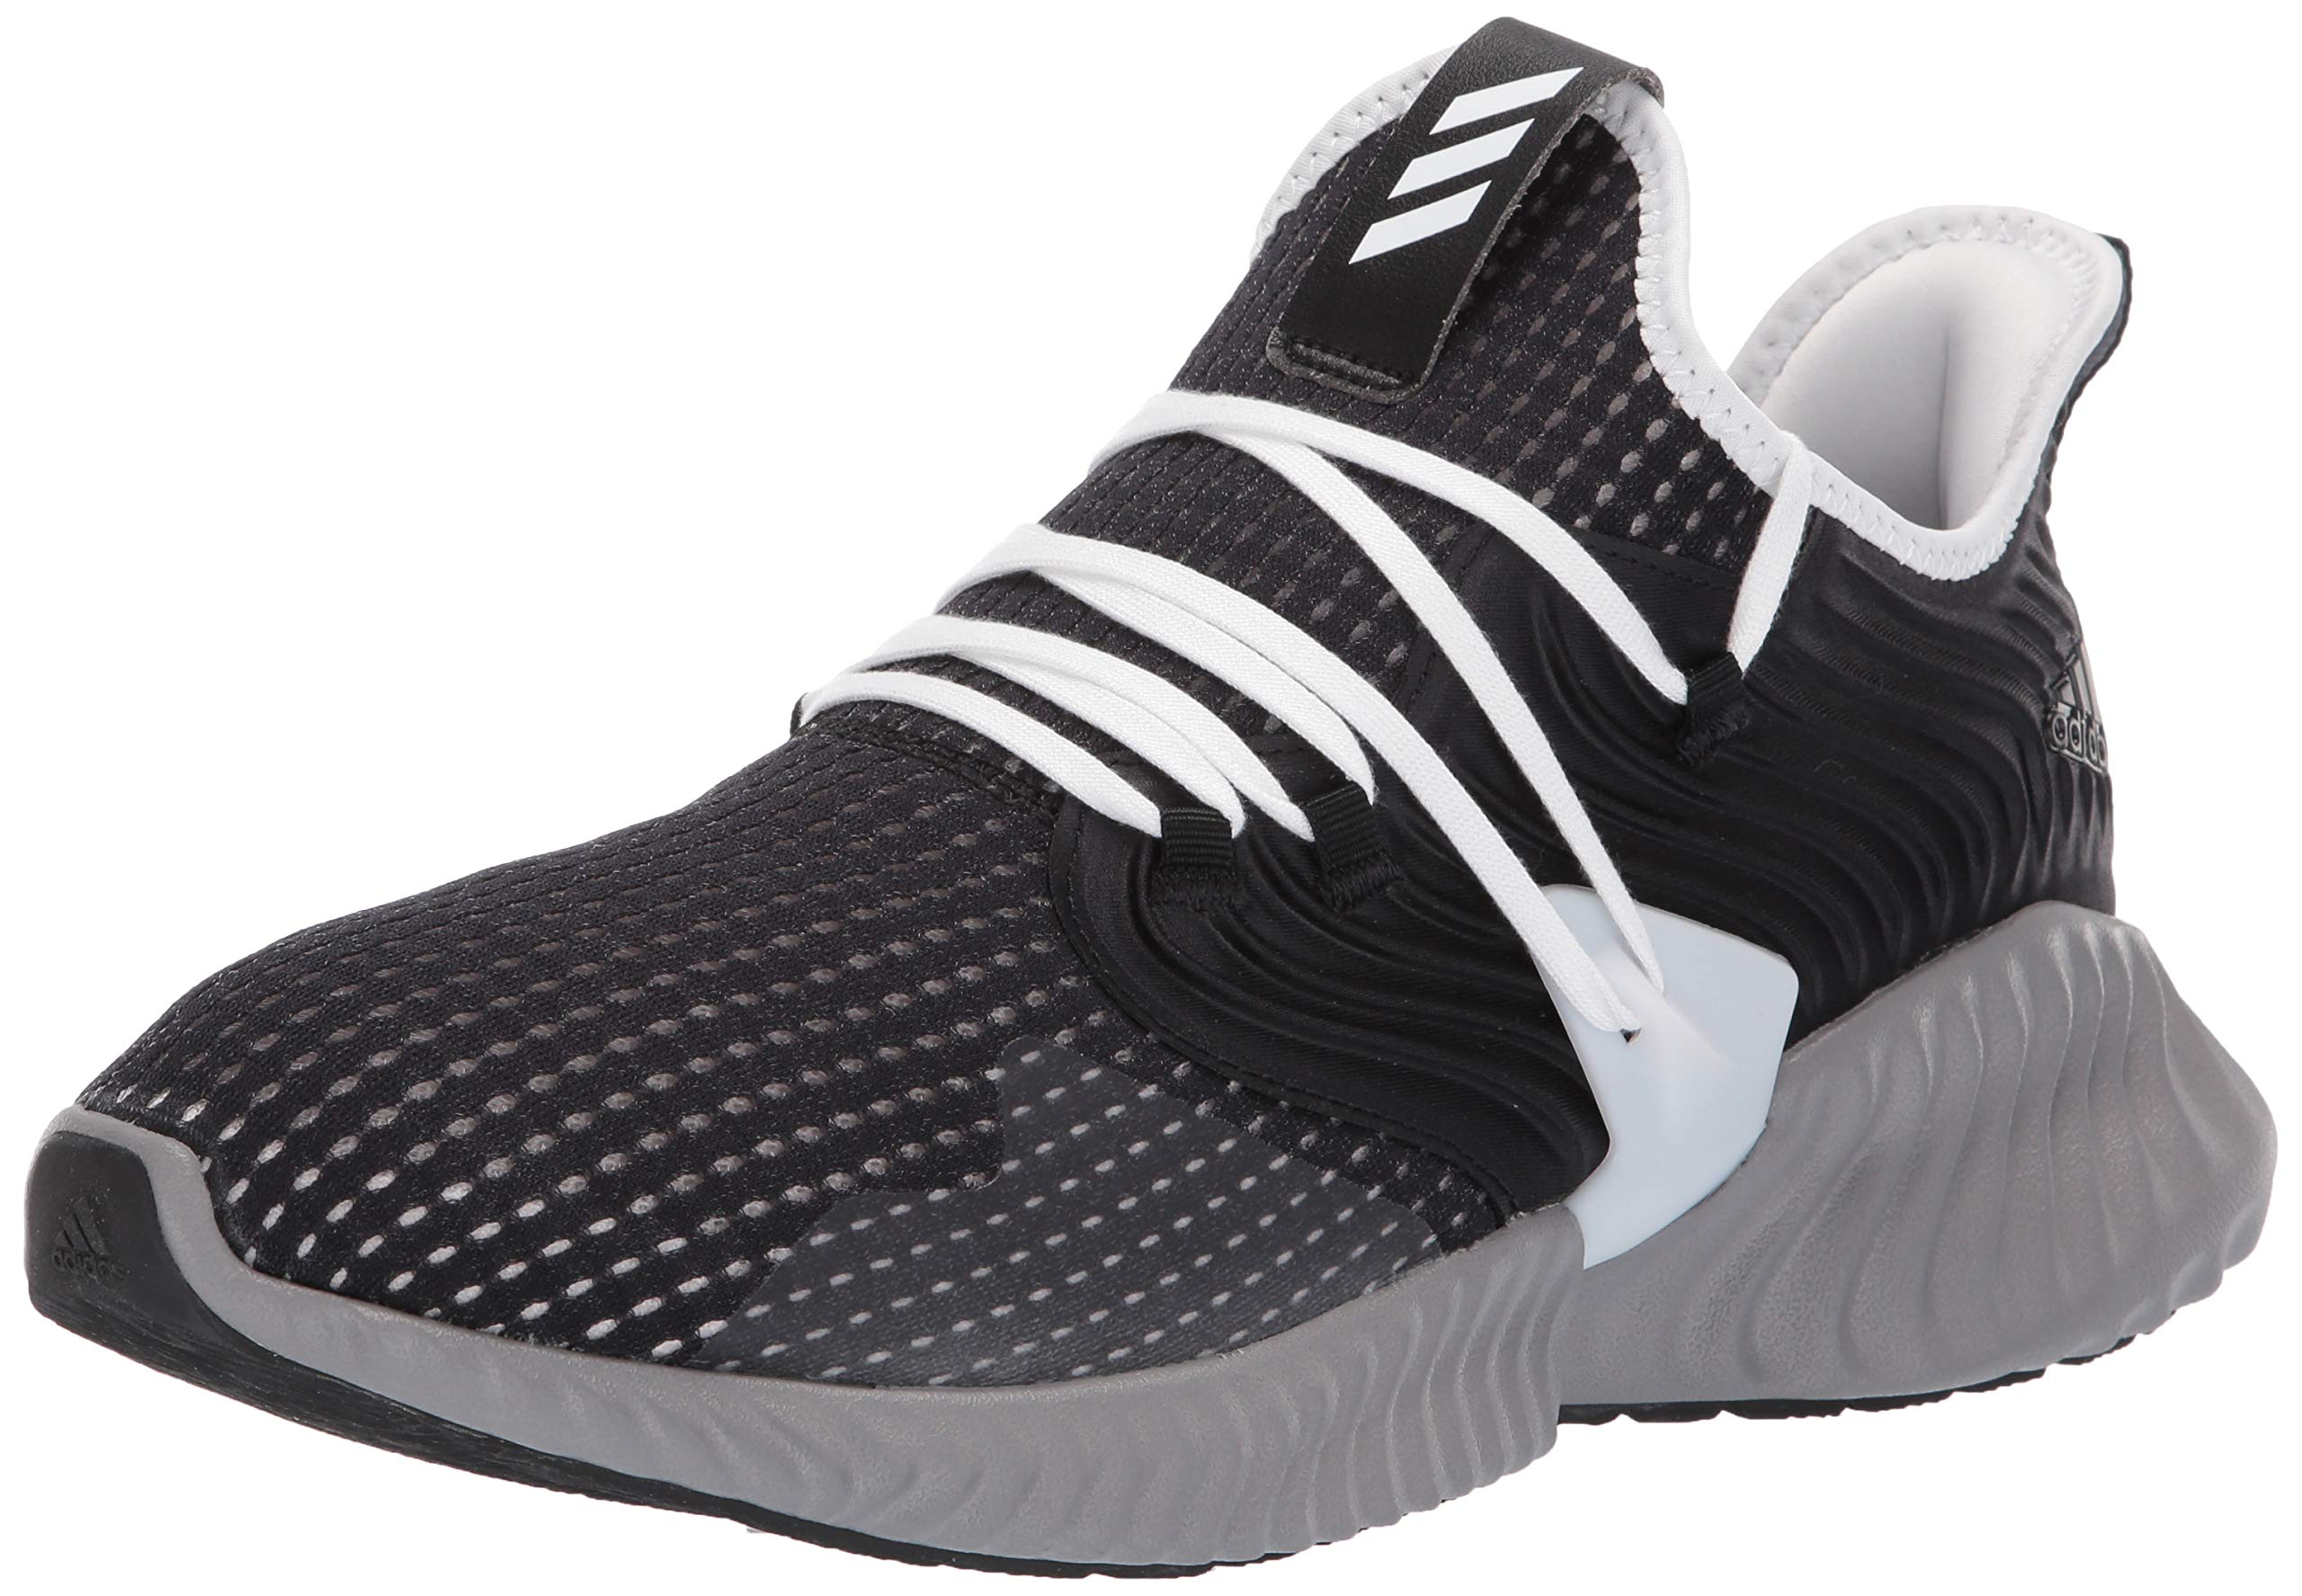 85dfa1342dcdf adidas Men's Alphabounce Instinct CC, black/white/grey, 13 M US